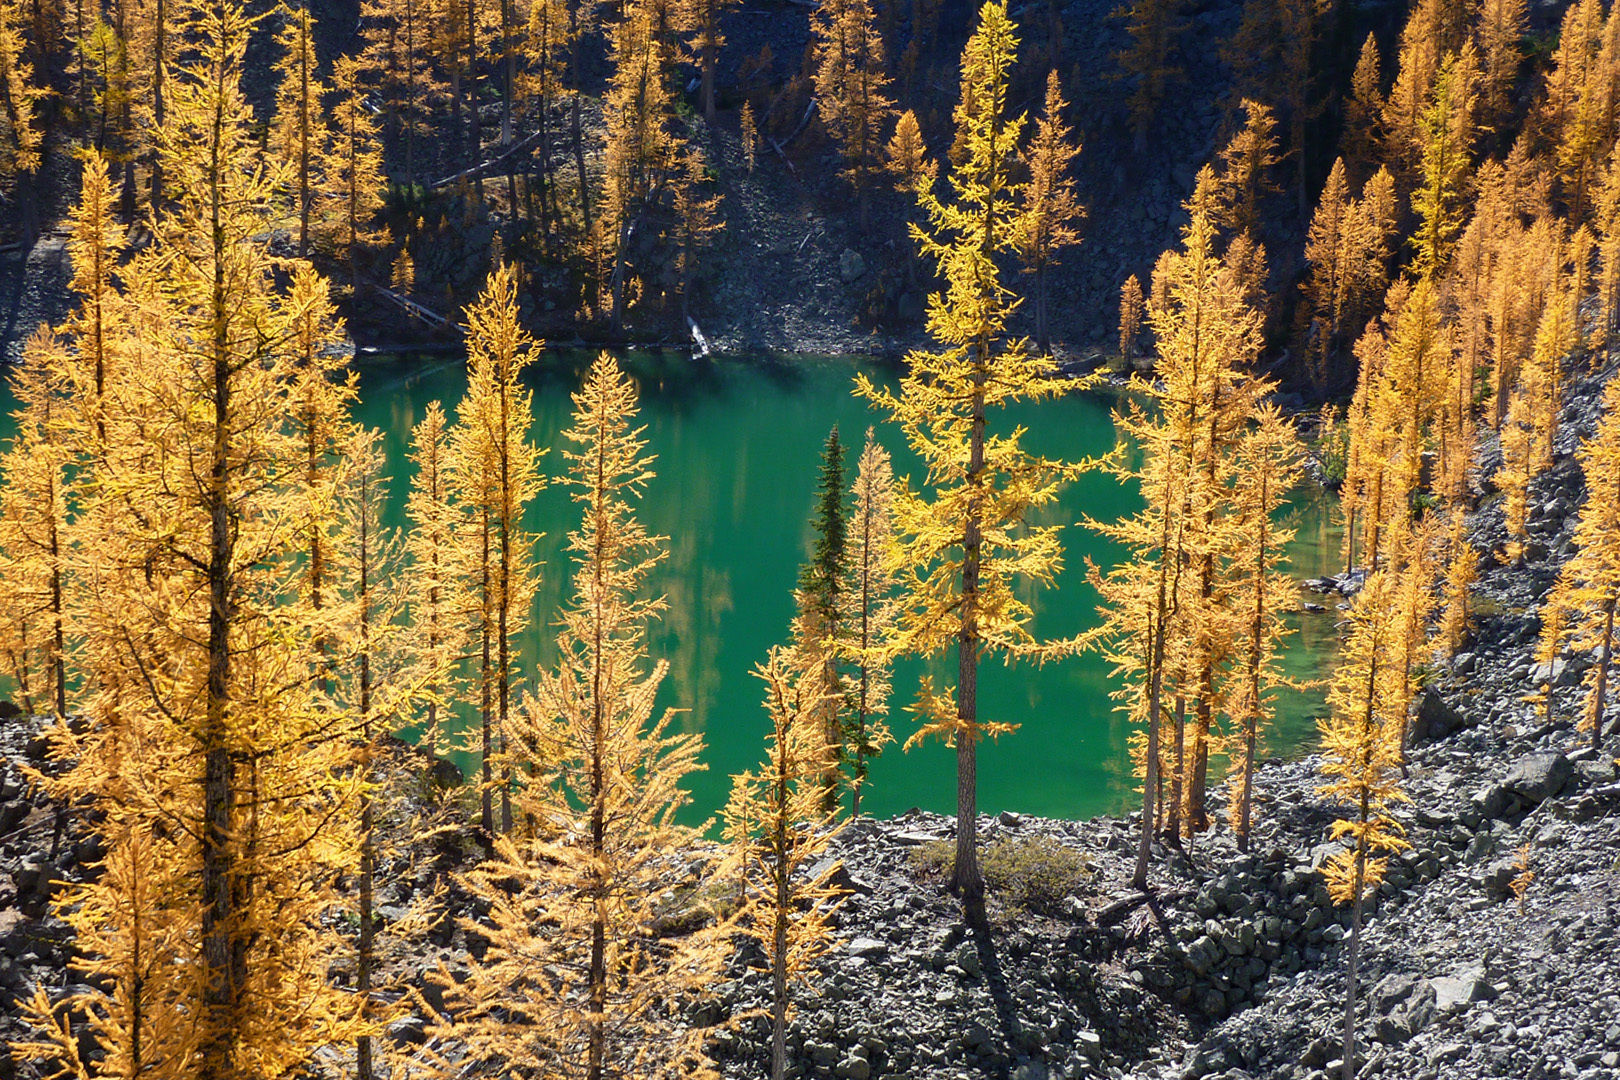 Copper Glance Lake - If I don't get back to Winthrop for a few months, I definitely will try to visit here for larch season!